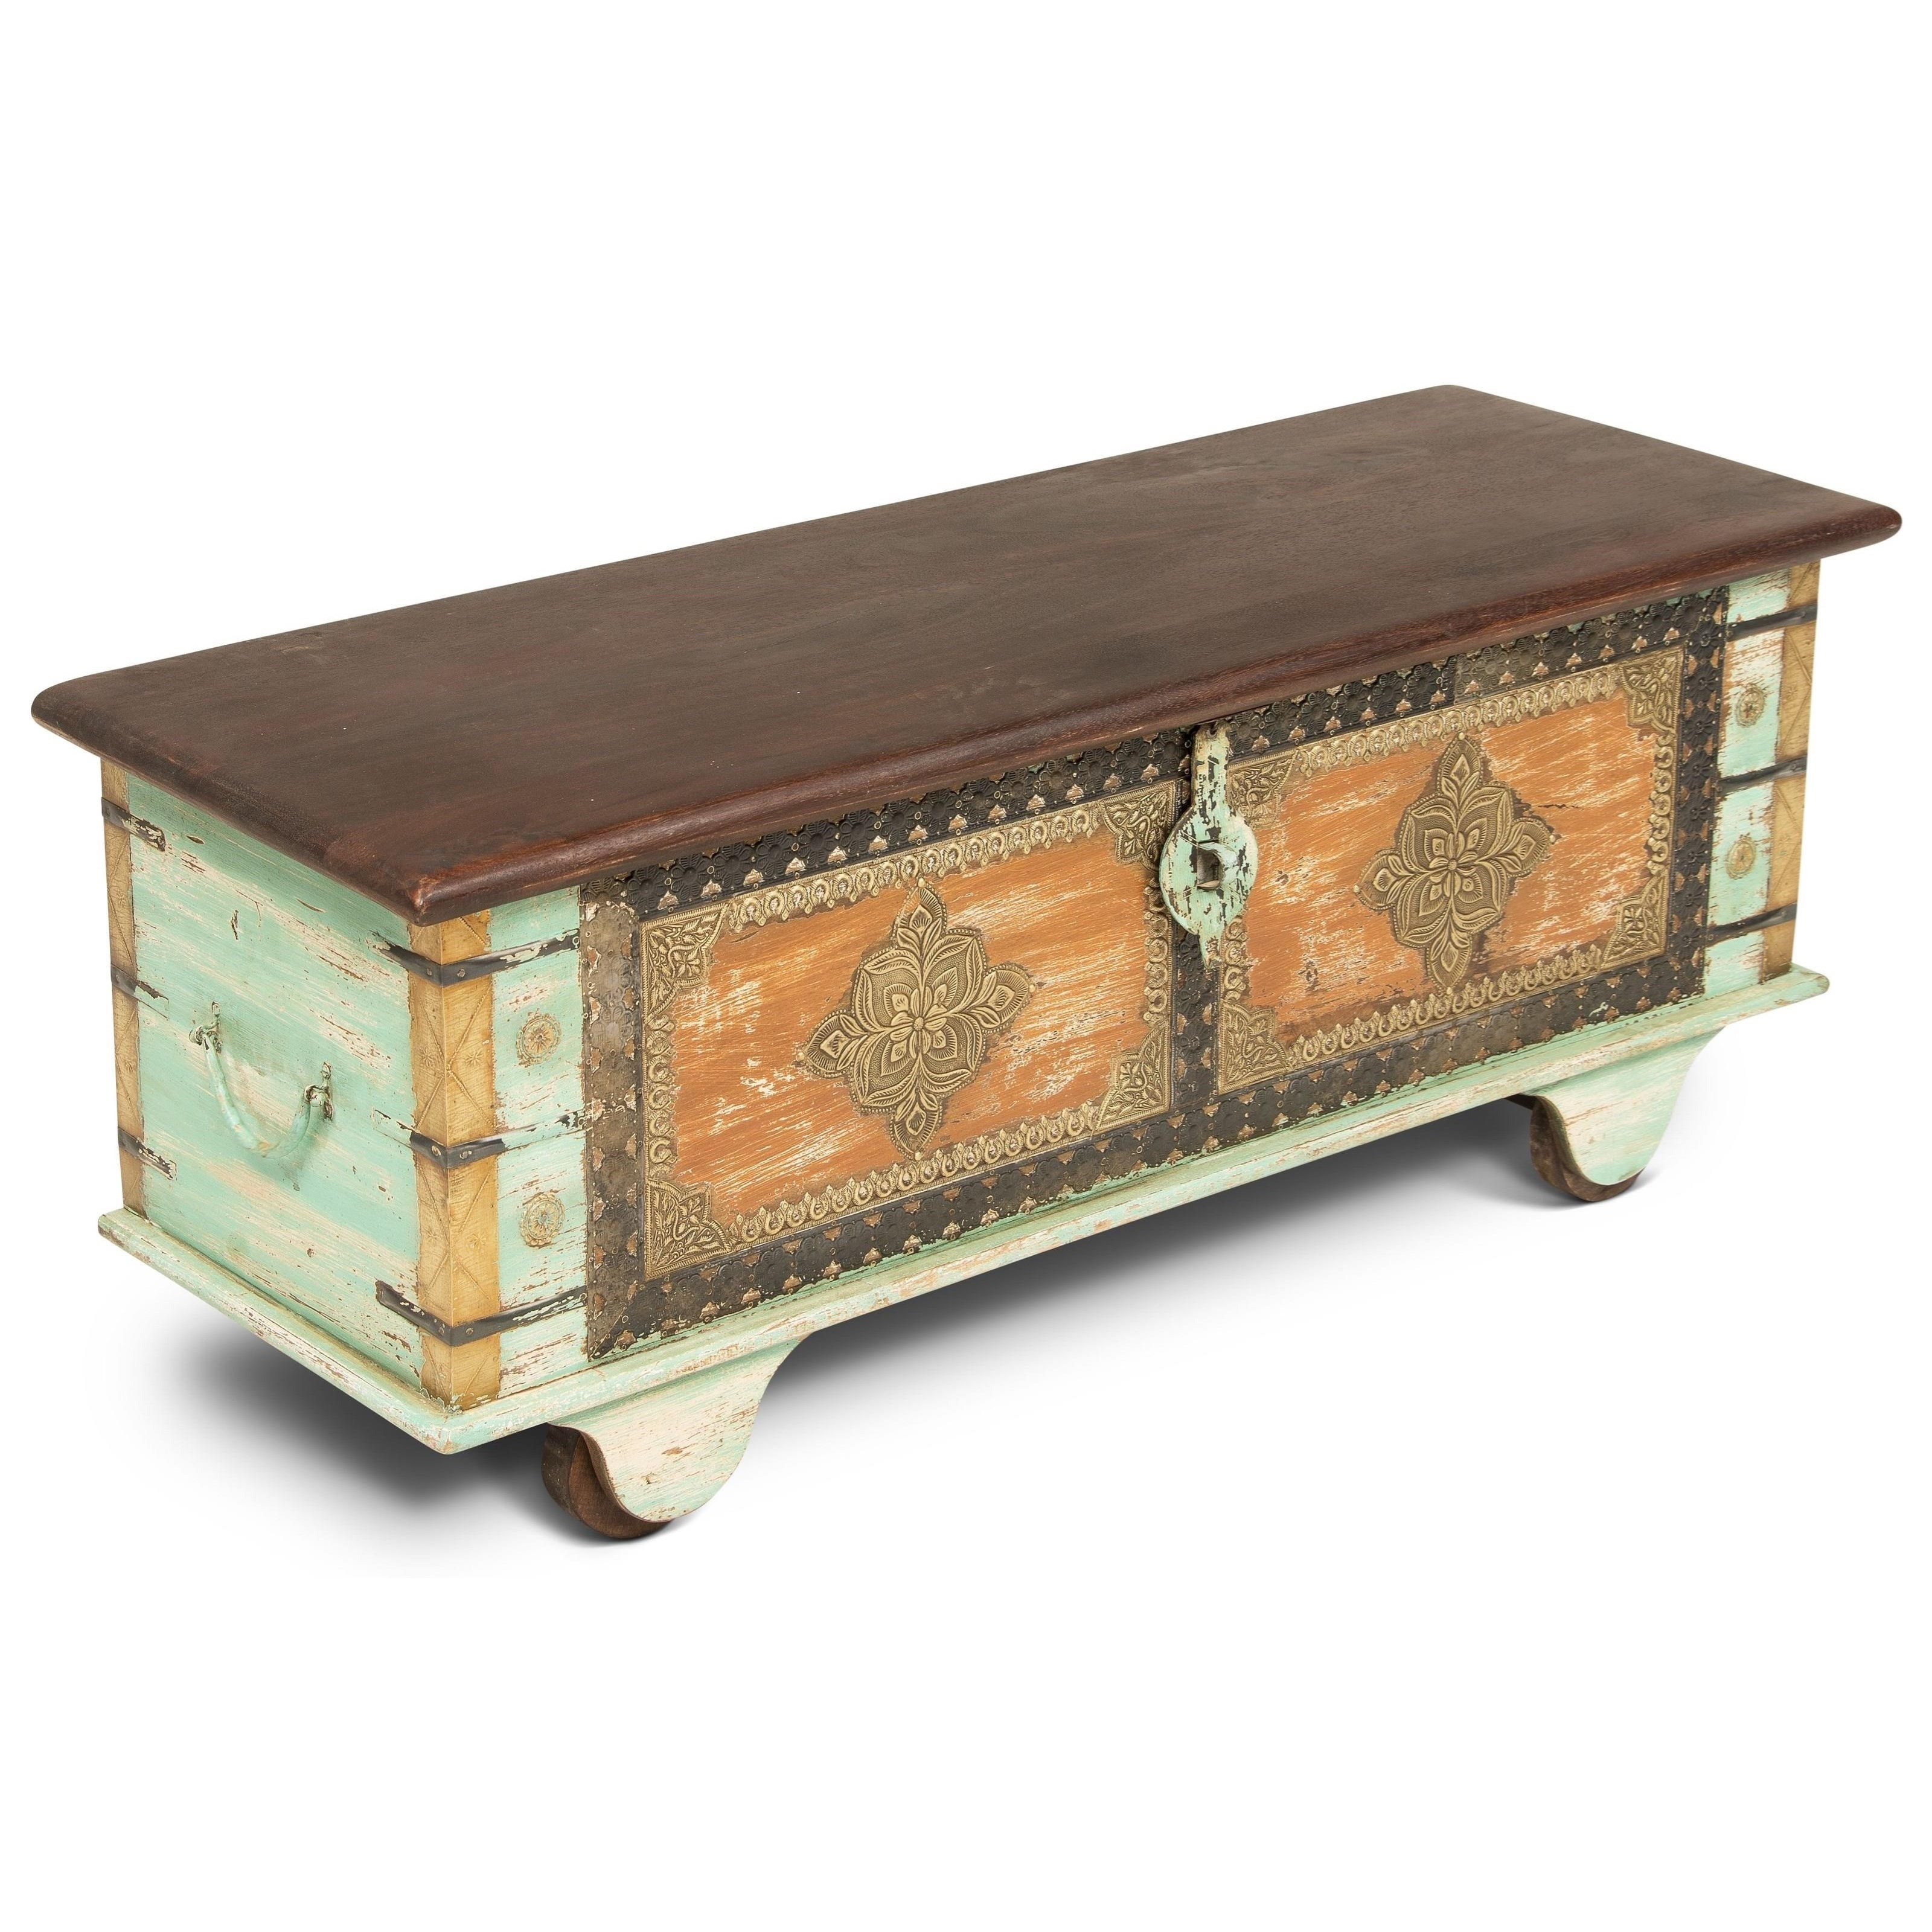 India Accents Alma Storage Trunk at Sadler's Home Furnishings